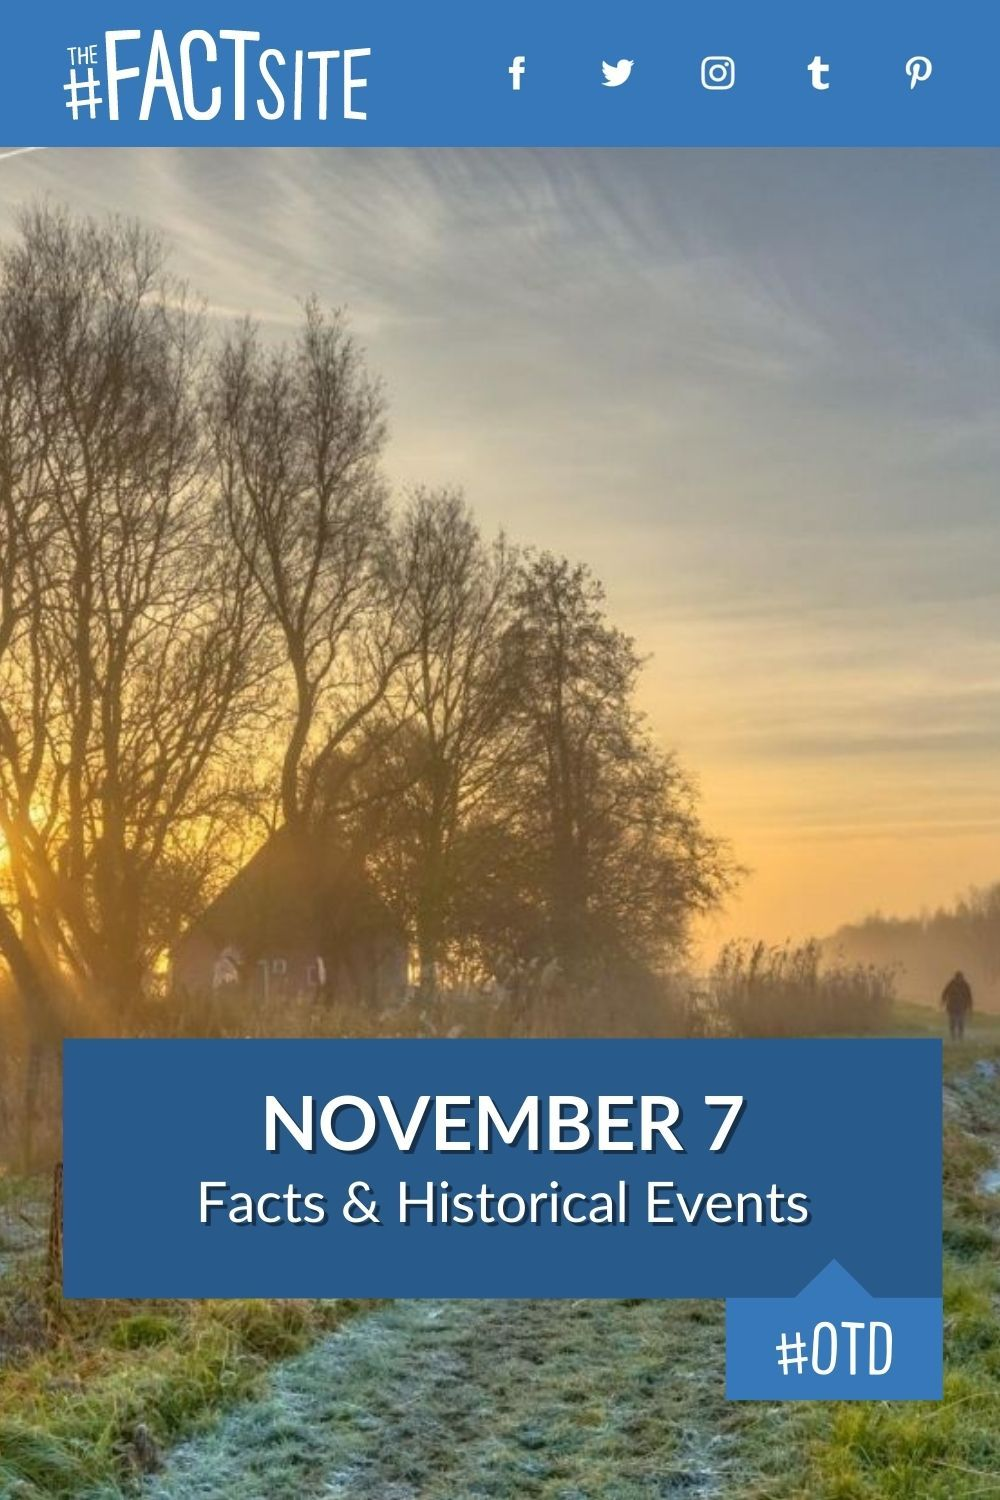 Facts & Historic Events That Happened on November 7